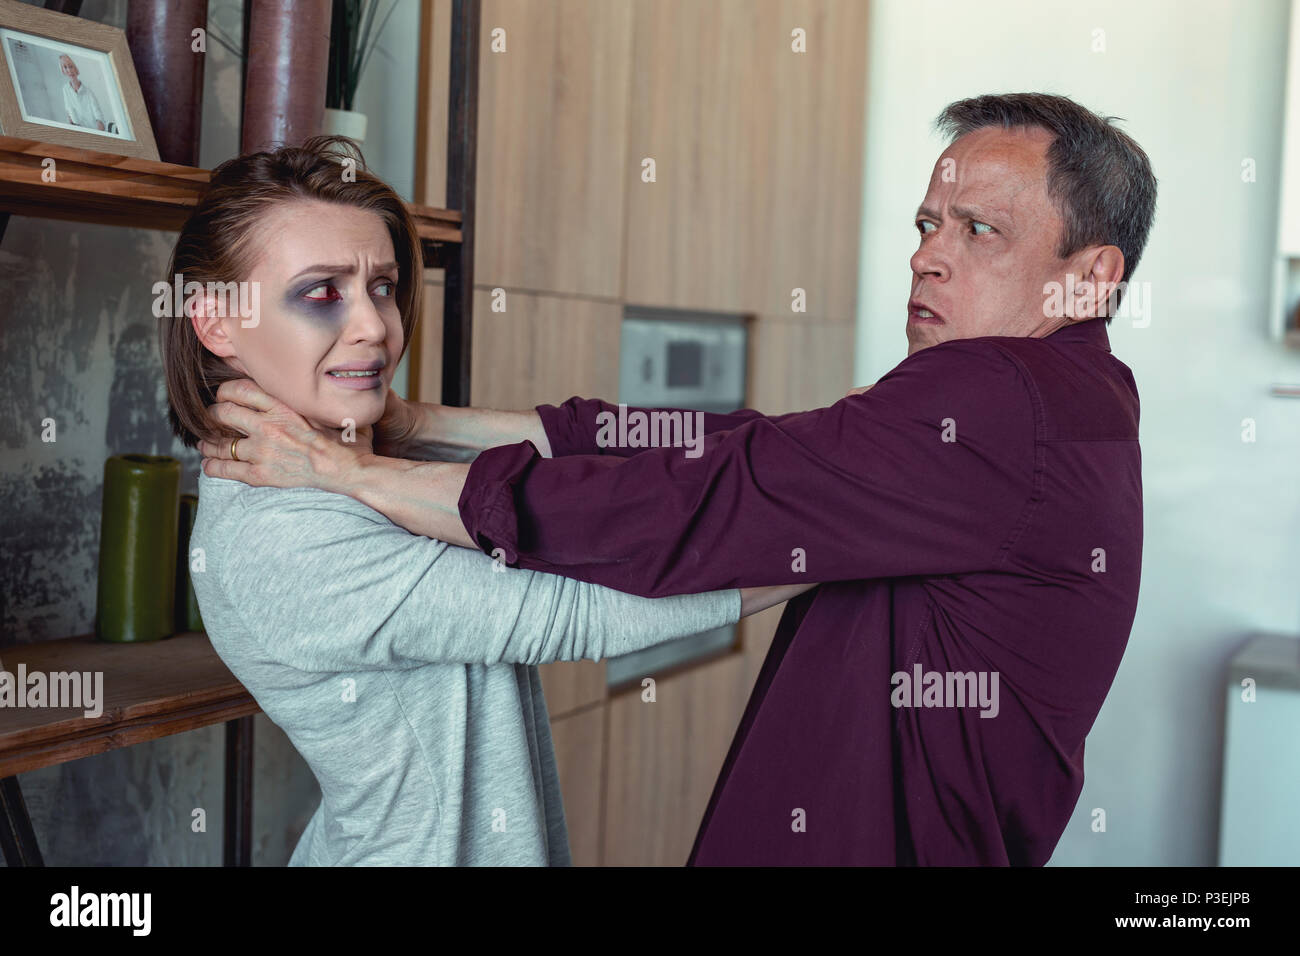 Crazy robber strangling his victim at the place of criminal - Stock Image